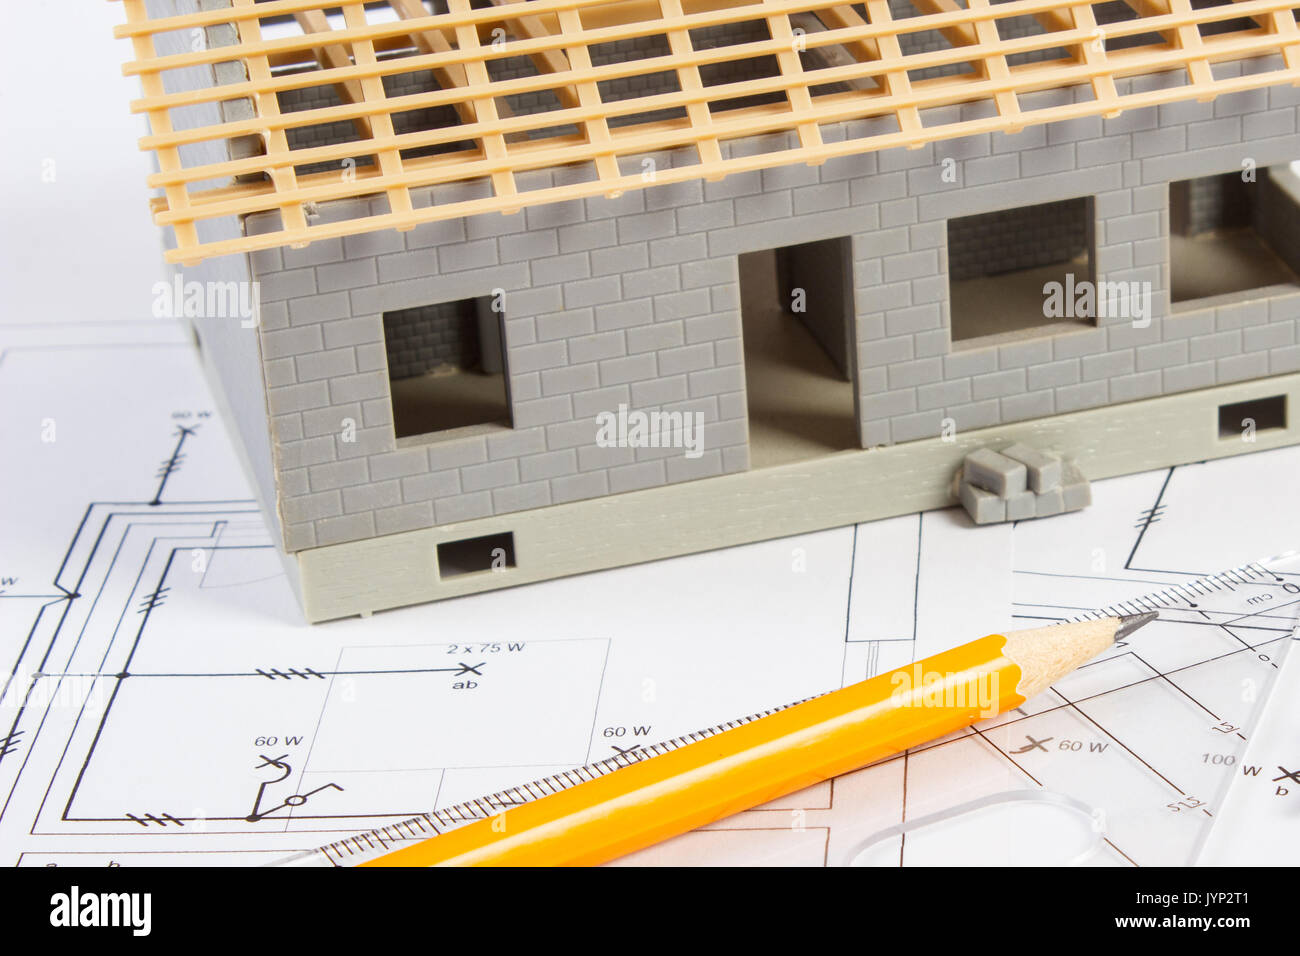 House of electrical engineering stock photos